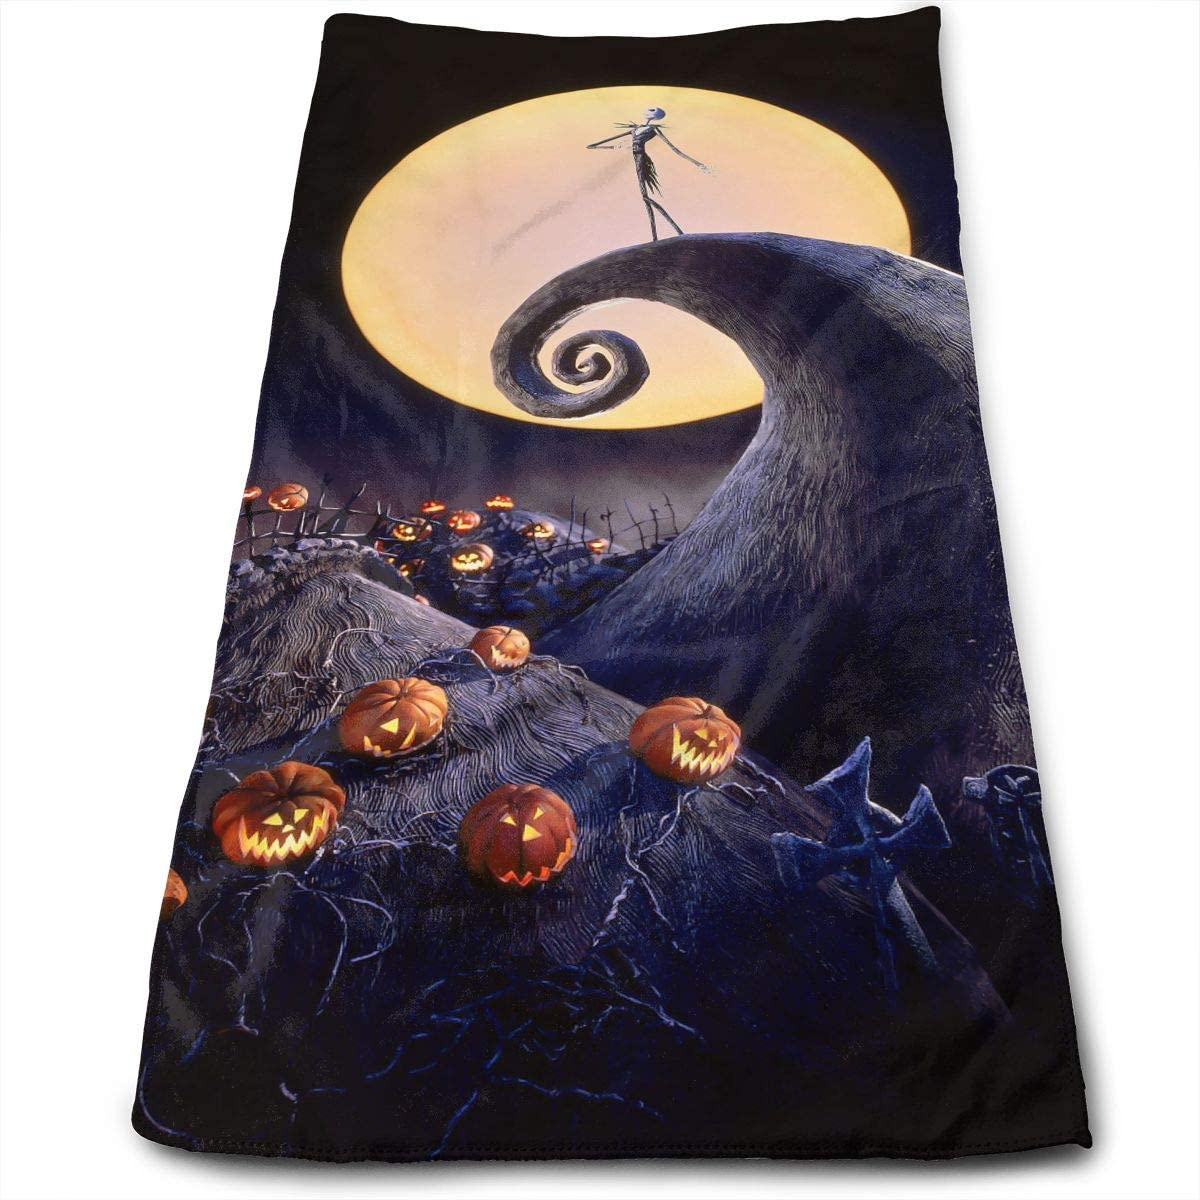 AZOULA The Nightmare Before Christmas Face Hand Towels Microfiber Sport Towels for Sports, Hair Care, Cosmetology, Cleaning, Furniture Makeup Removing Cloths Fast Drying 27.5 X 12 Inch.